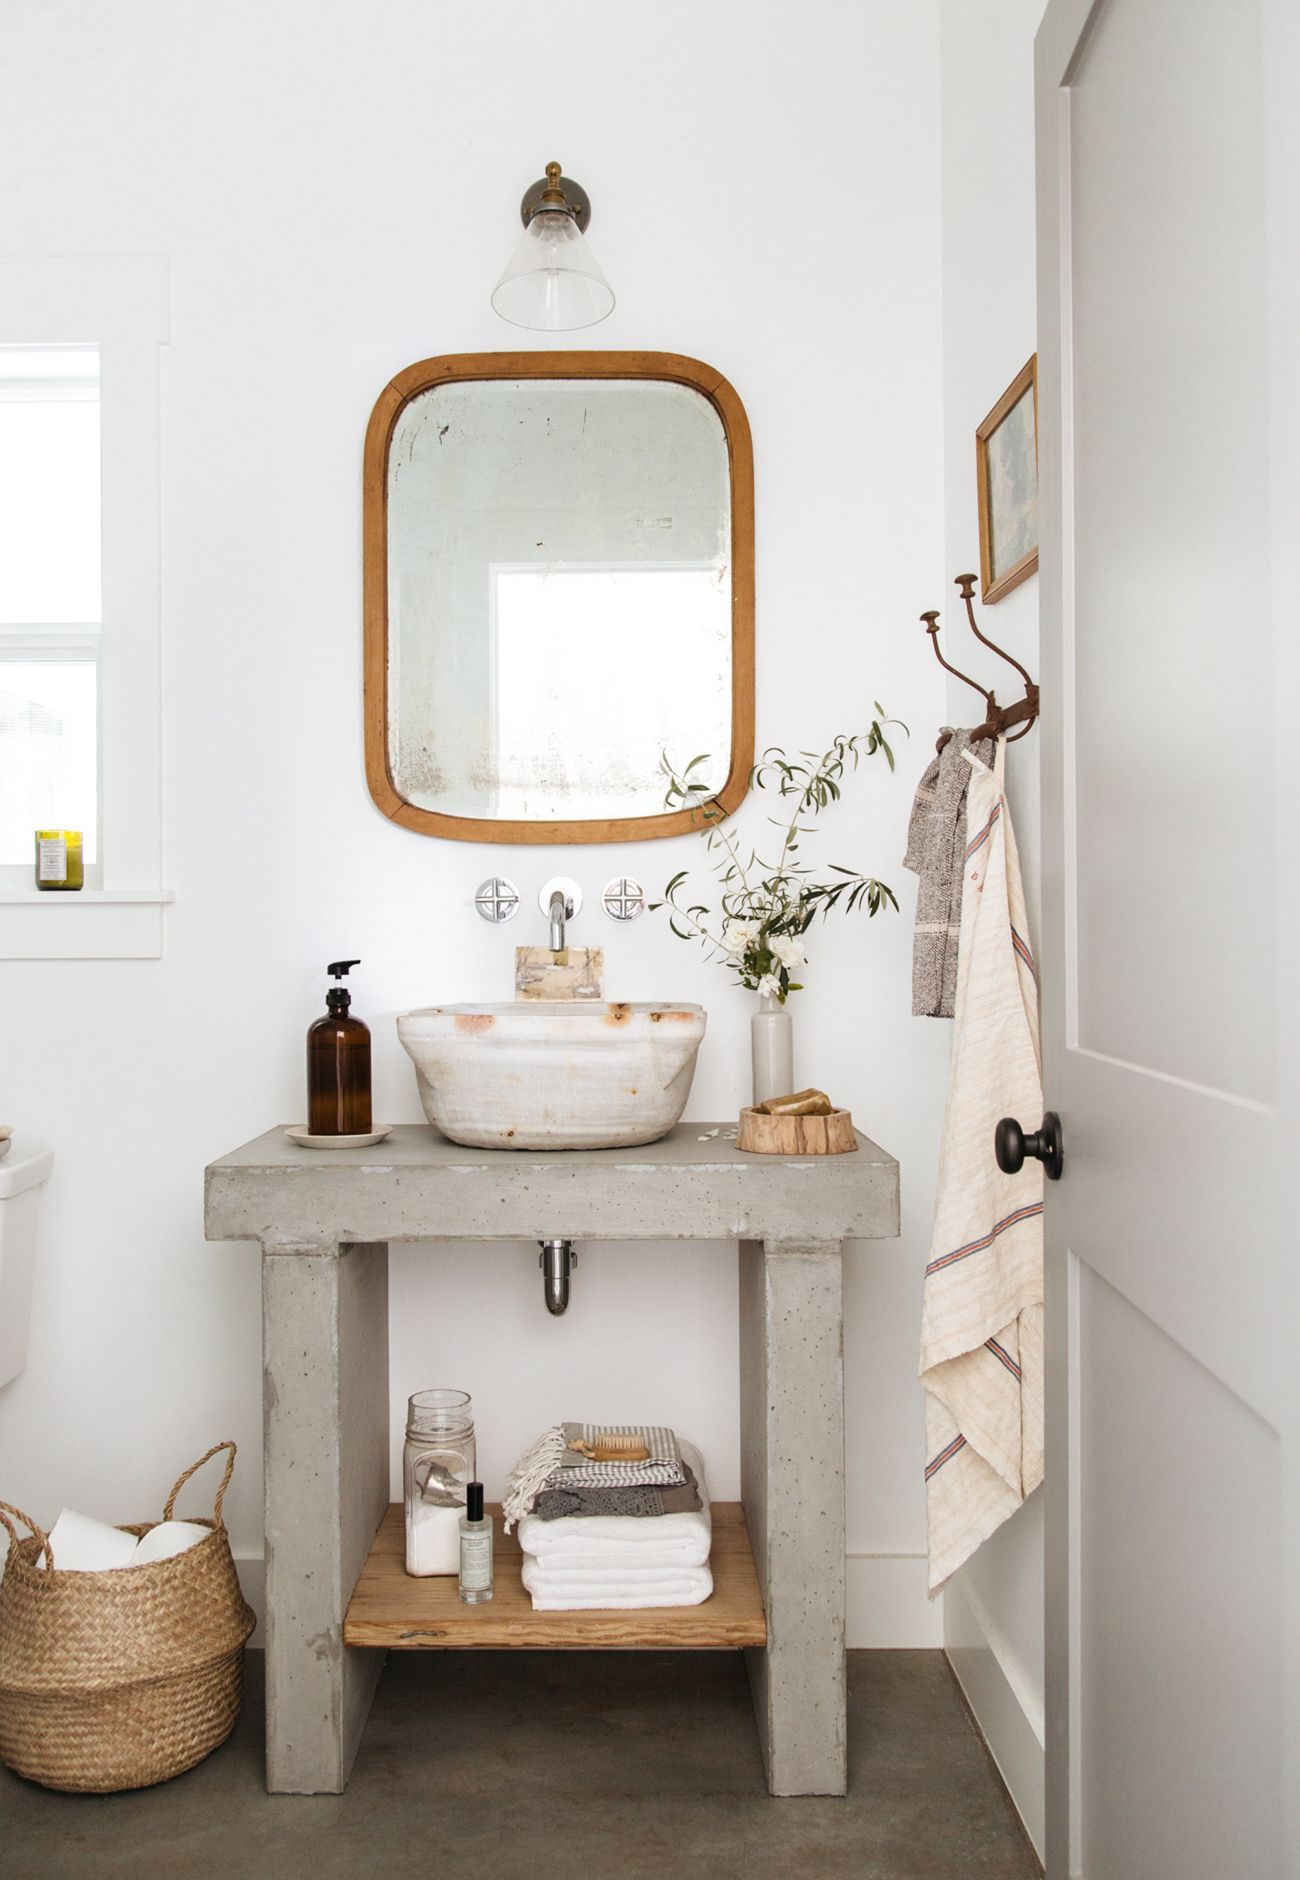 Startling decorative mirrors for bathroom decor ideas images in powder - If There S One Thing I Ve Learned Through My Years Of Design And Styling Work It S This Design Your Home For The People That Actually Live There